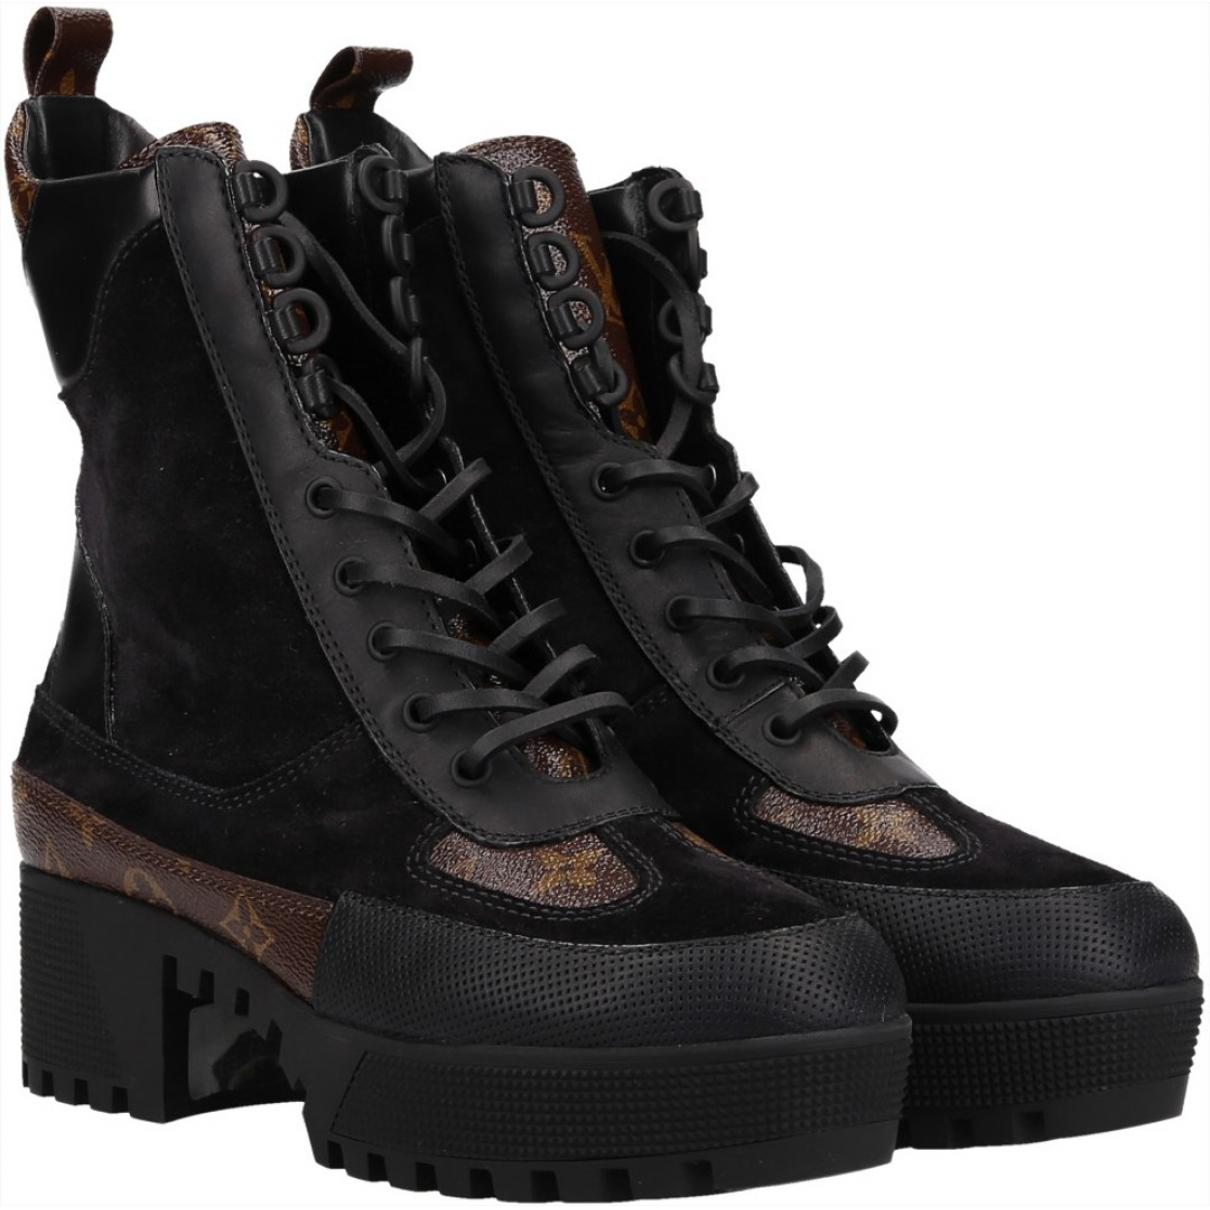 f7d273576720 Lyst - Louis Vuitton Pre-owned Boots in Black